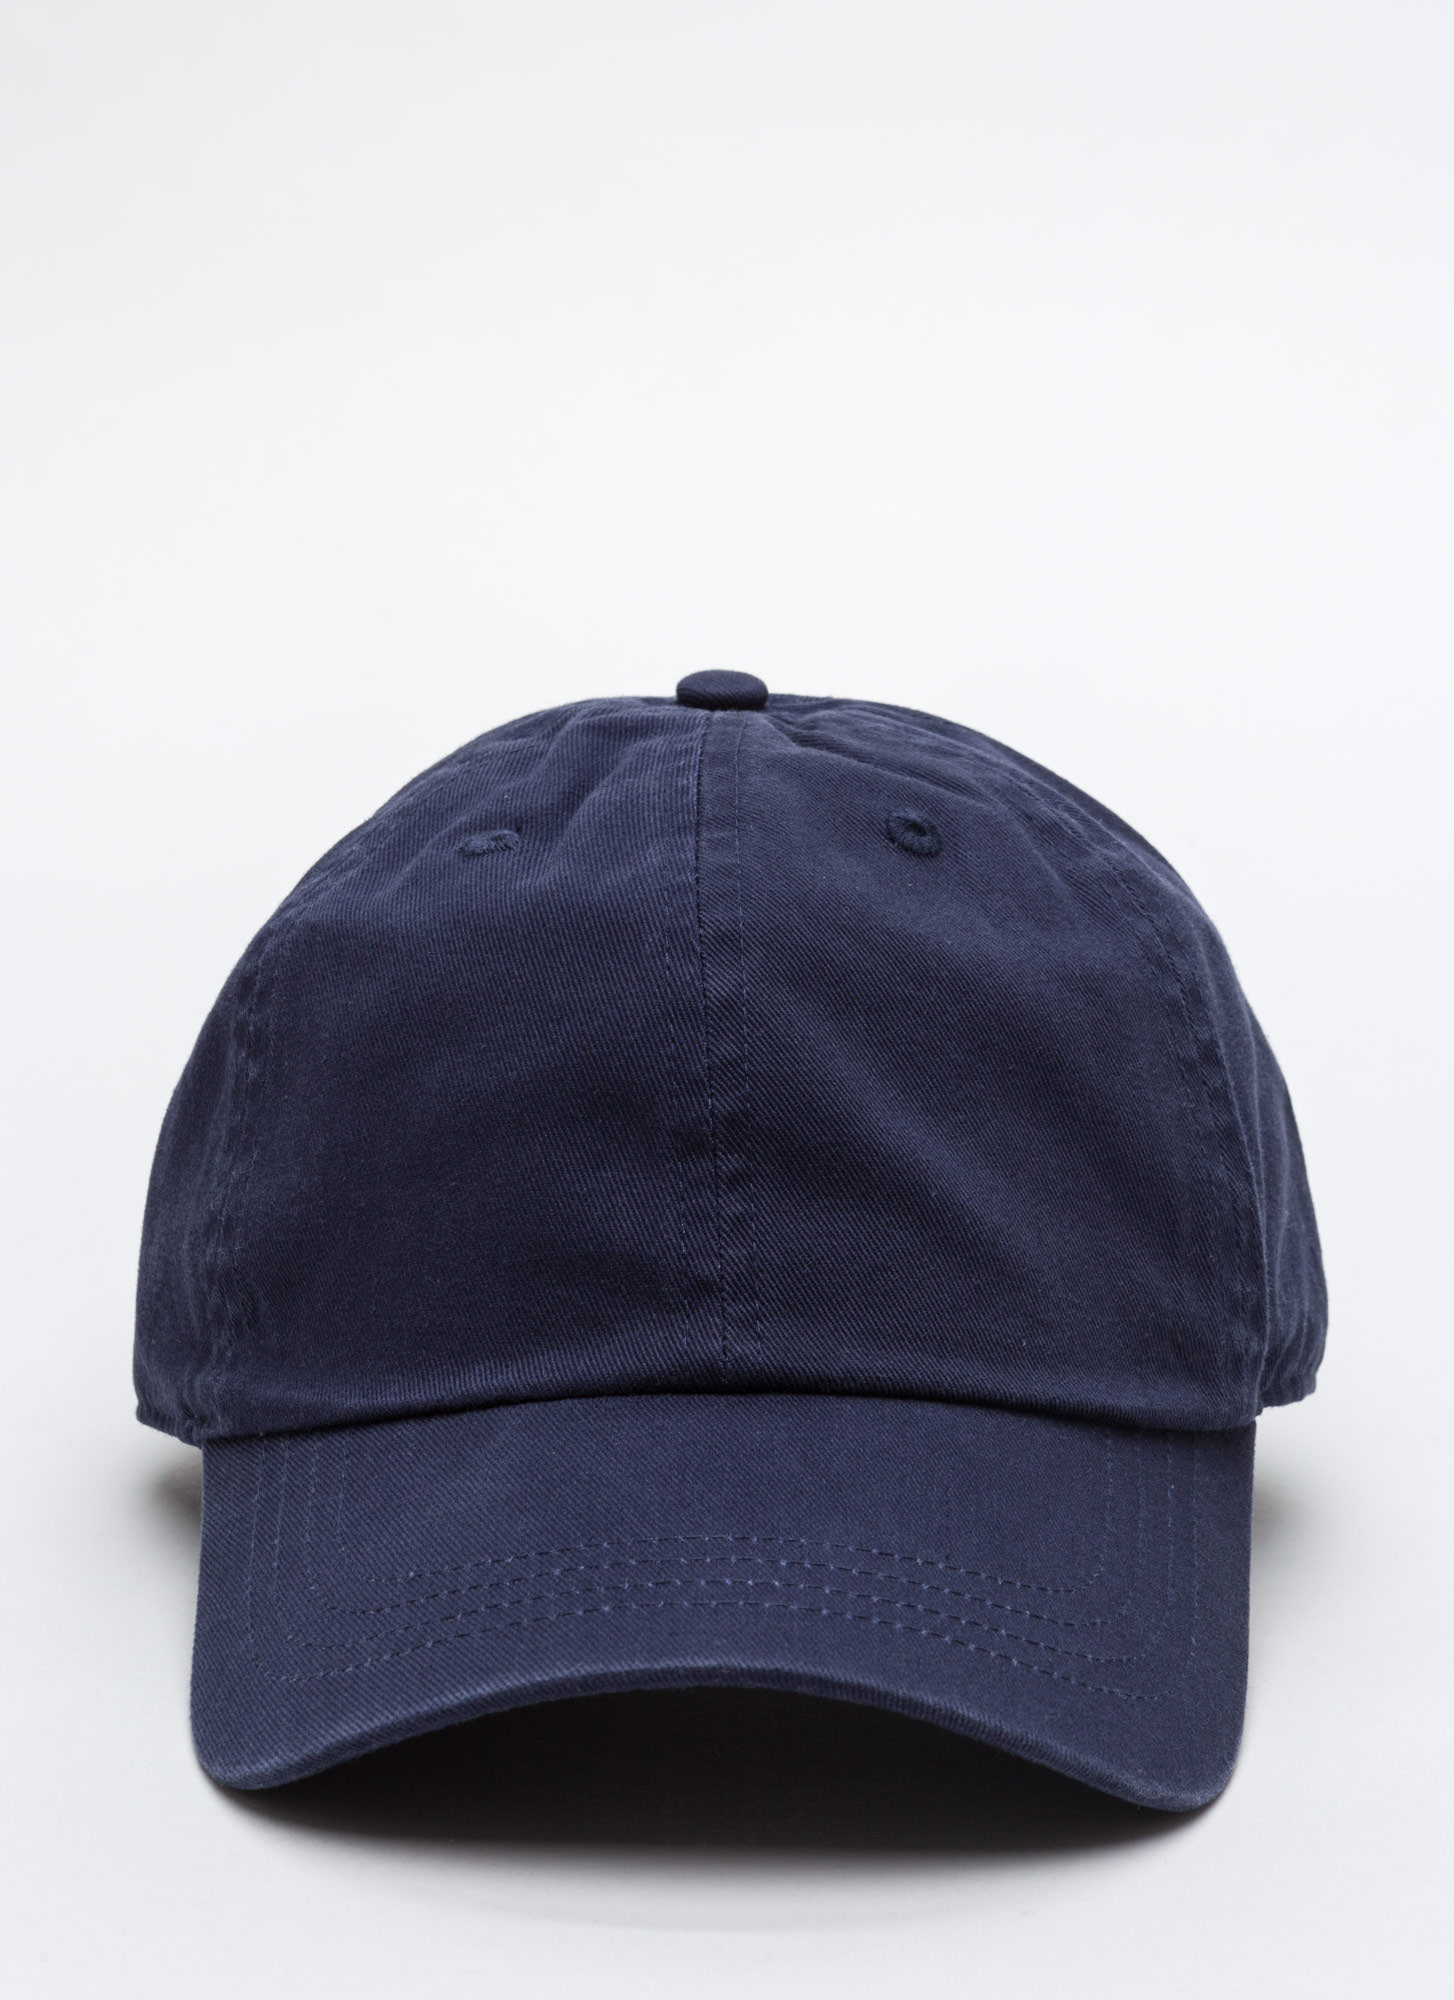 Not A Player Baseball Cap NAVY